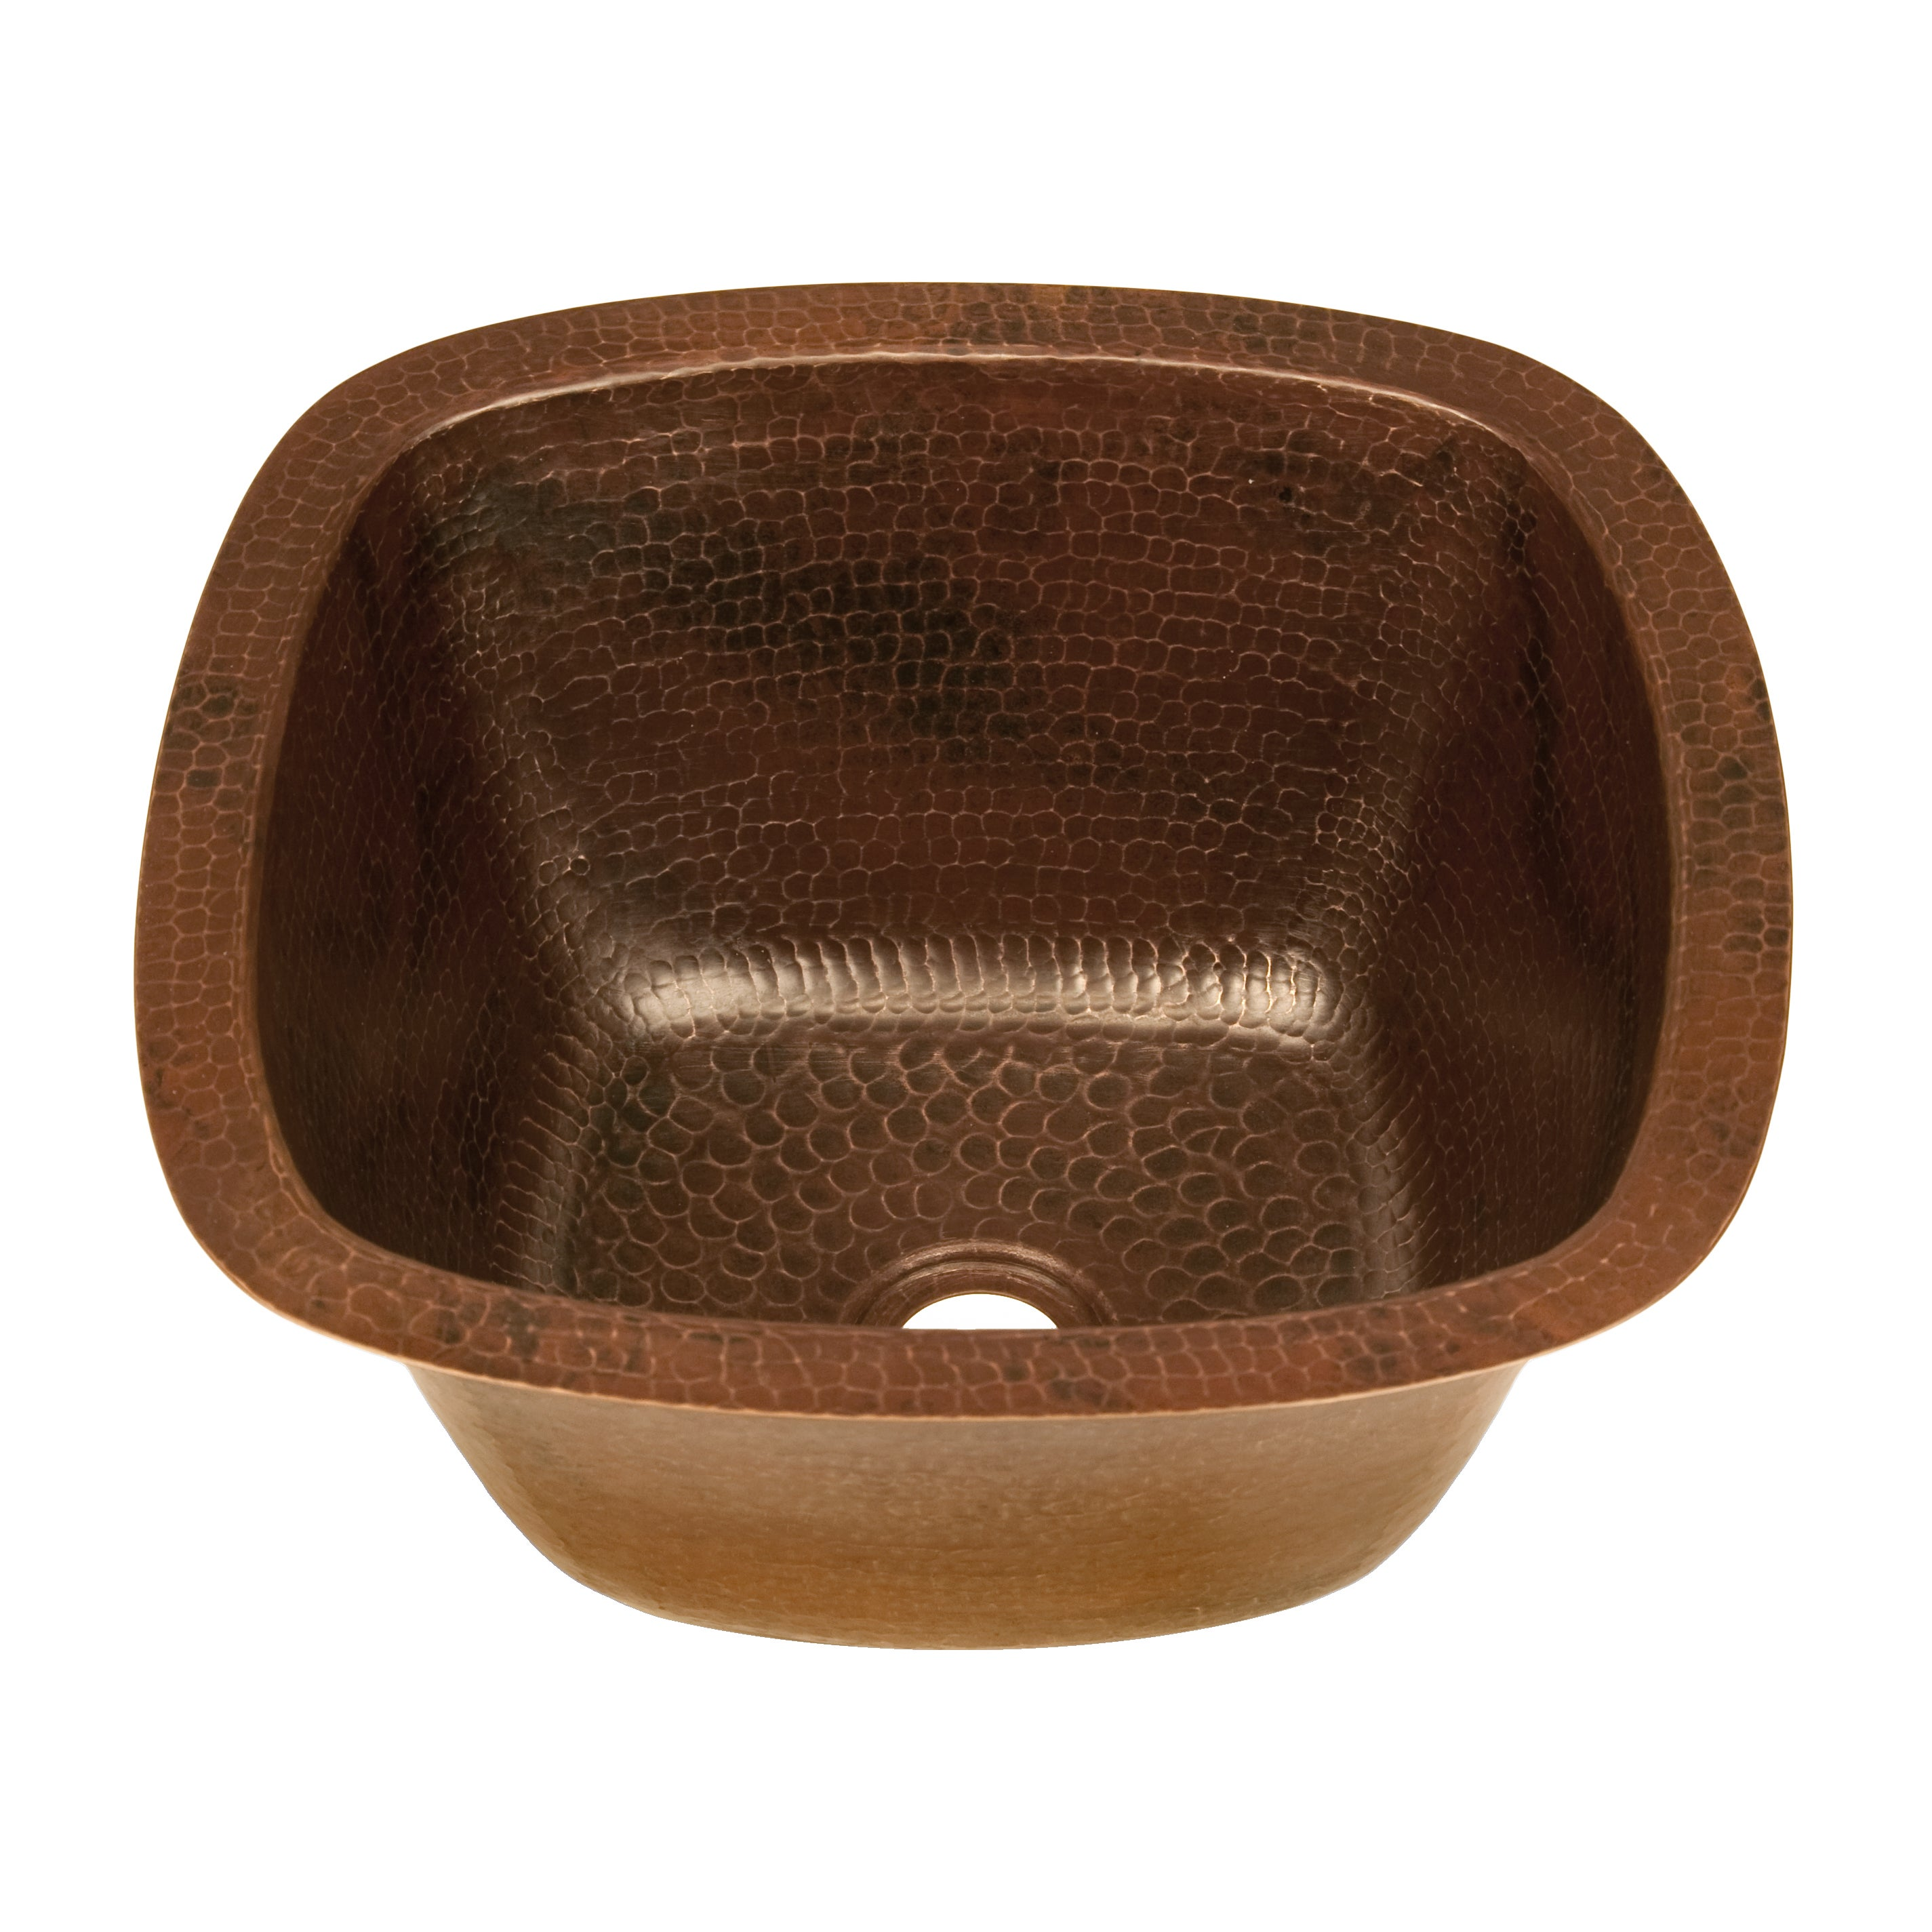 Square 14-inch Hand Hammered Copper Bathroom Sink - Overstock Shopping ...